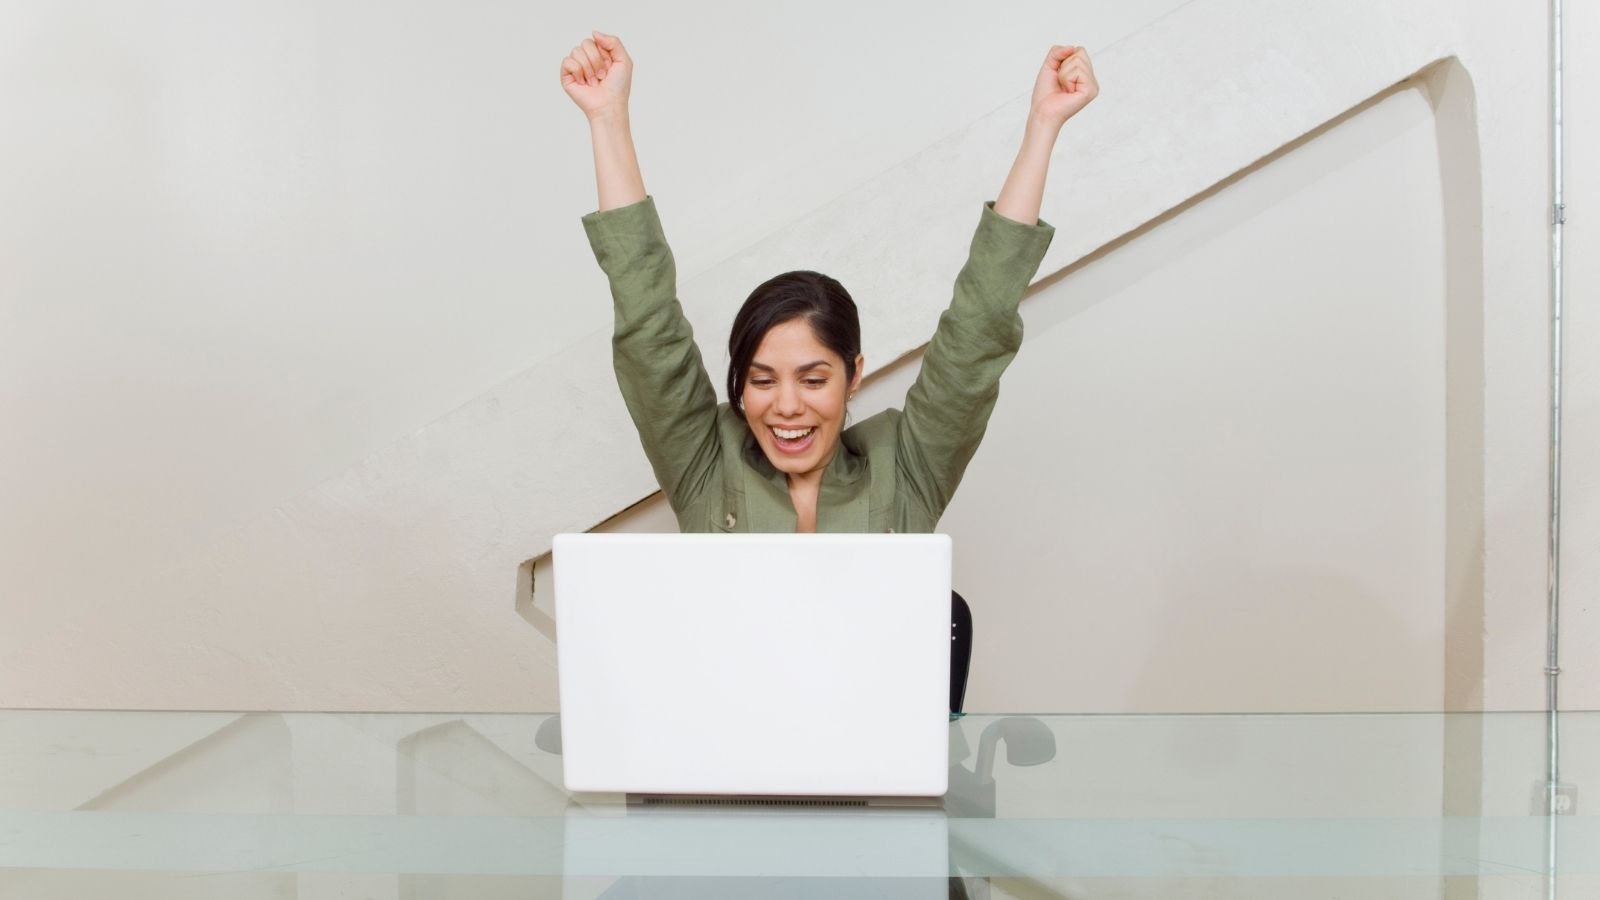 Woman who is excited about getting qualified through the RefiNow program offered by Fannie Mae.